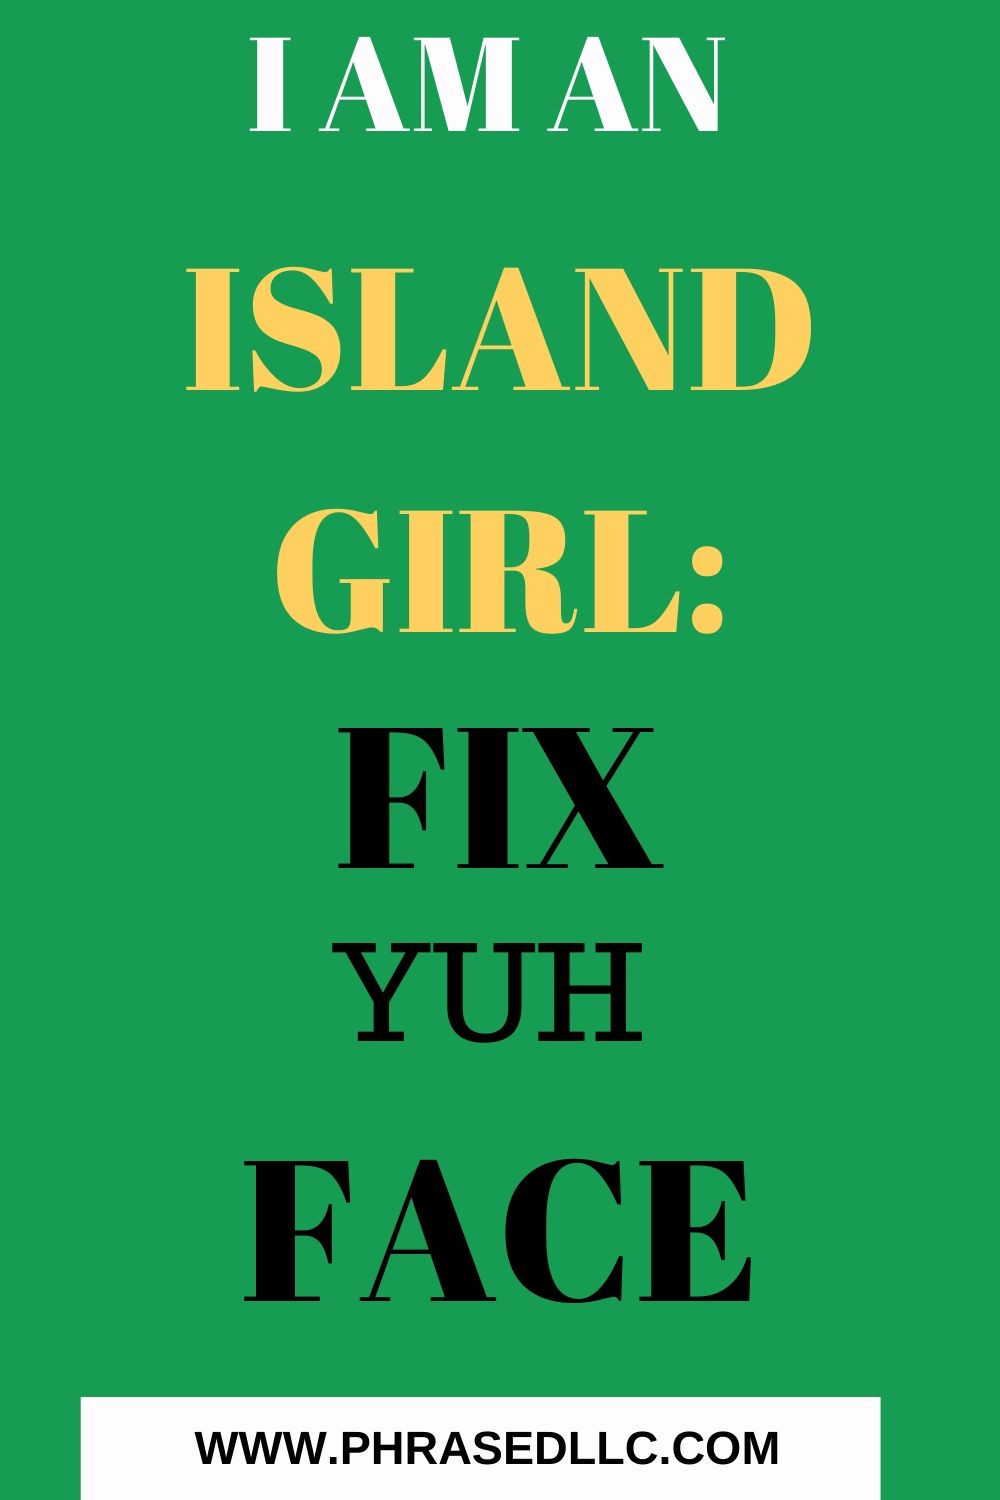 I am an Island Girl who had to fix yuh face for JCDC festival performances until an injury got in the way.